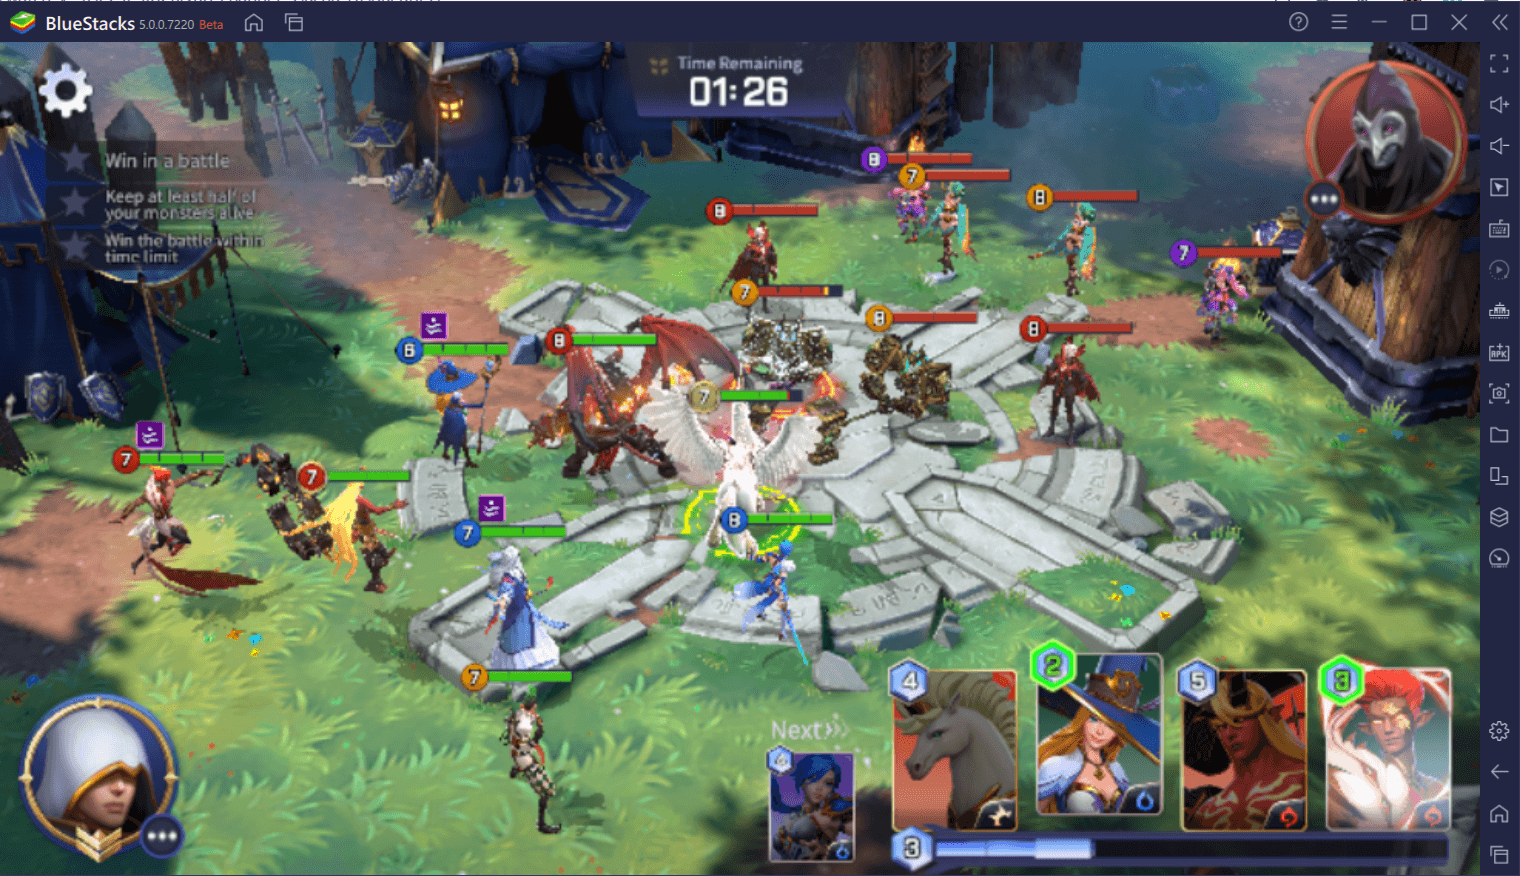 How to Install and Play Summoners War: Lost Centuria on PC with BlueStacks